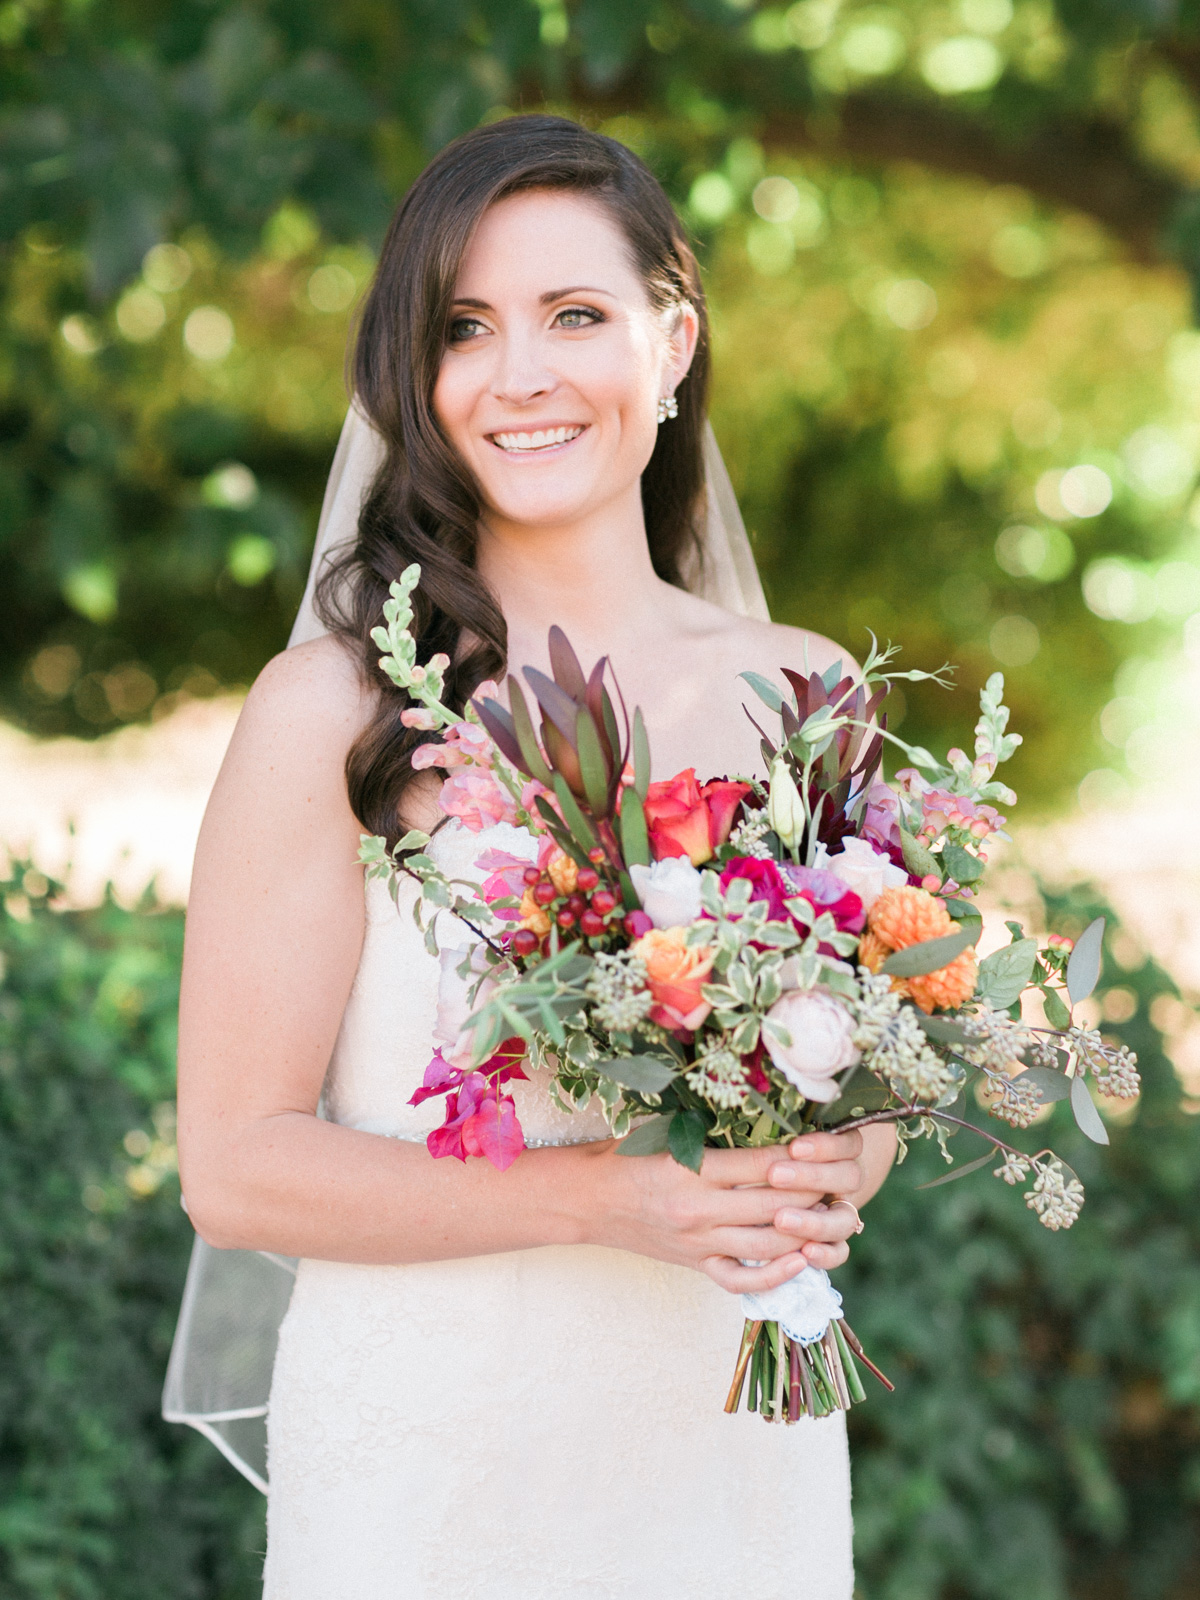 Gorgeous bride smiling captured by Phoenix wedding photographers, Betsy & John